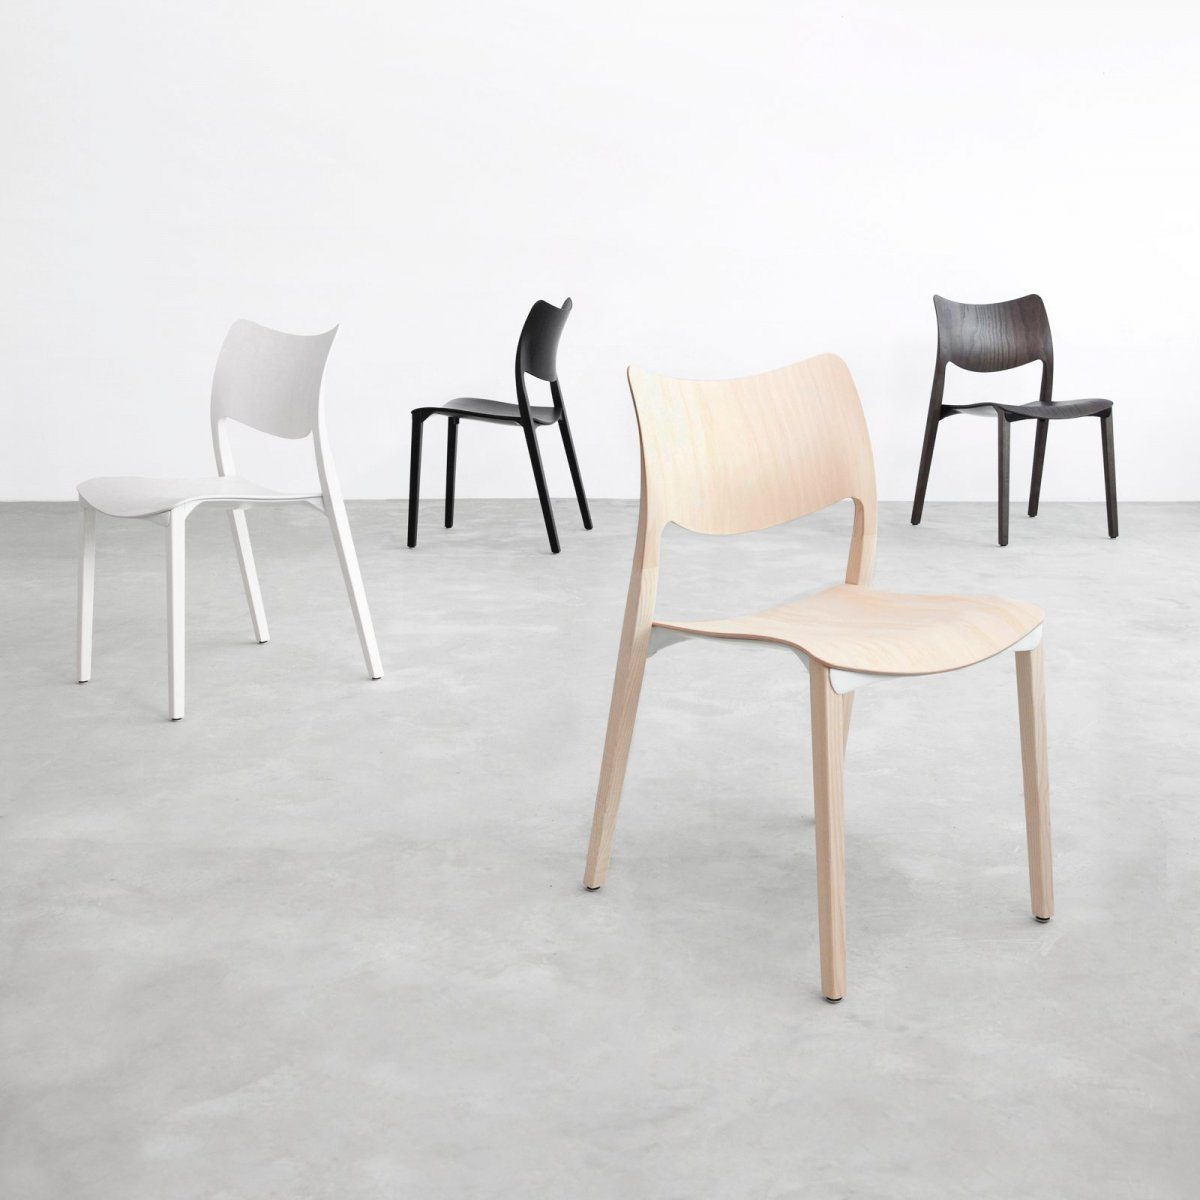 Laclasica Chairs.